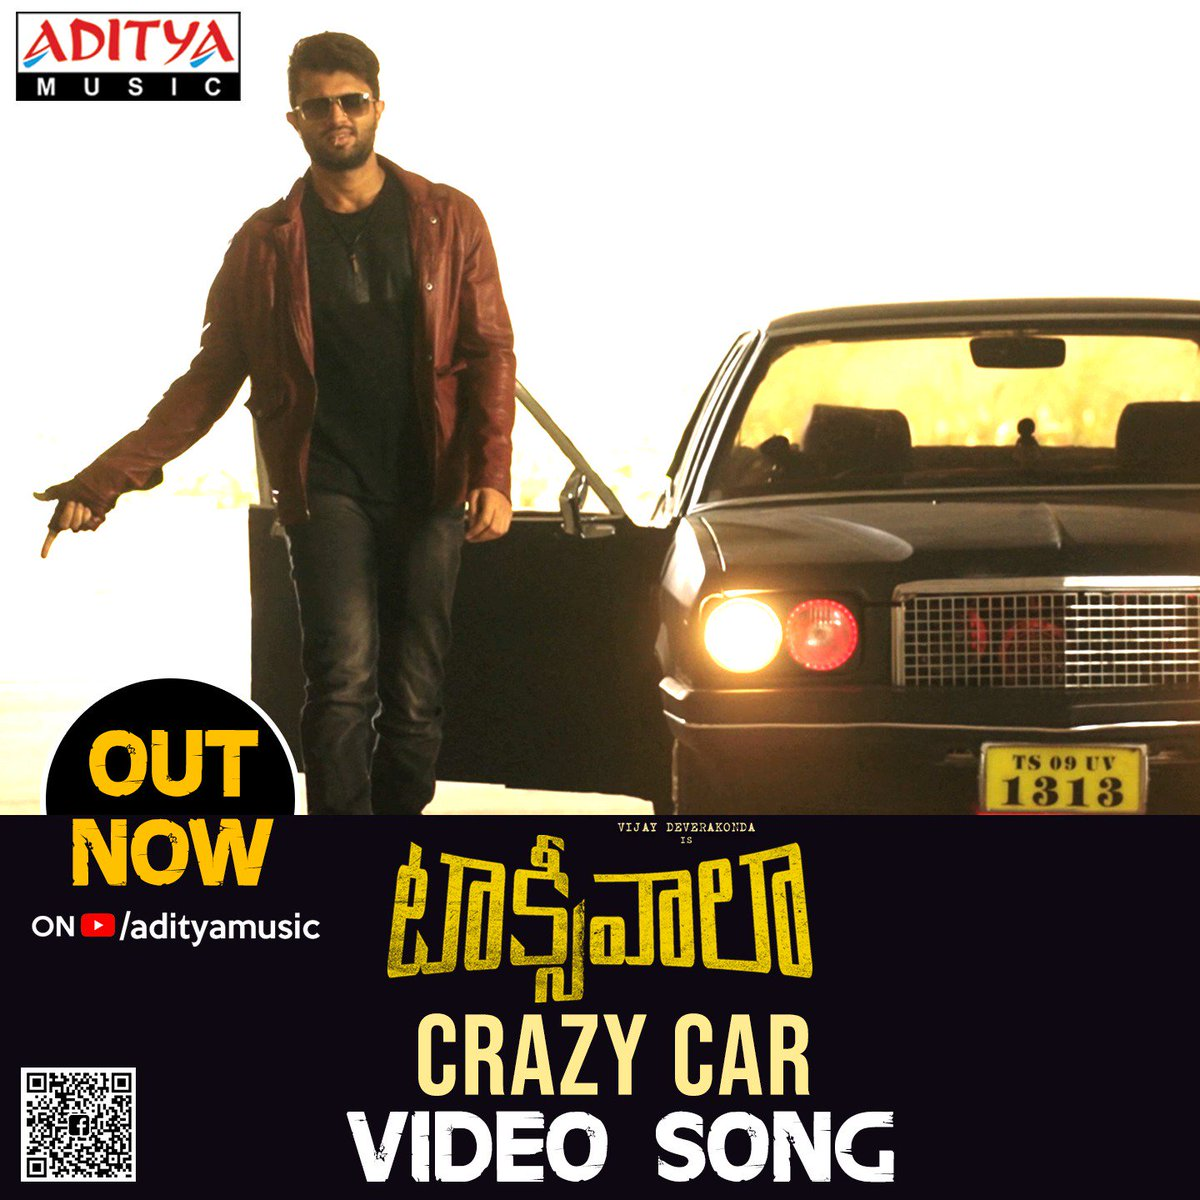 Aditya Music On Twitter Crazycar Video Song Is Out Now From